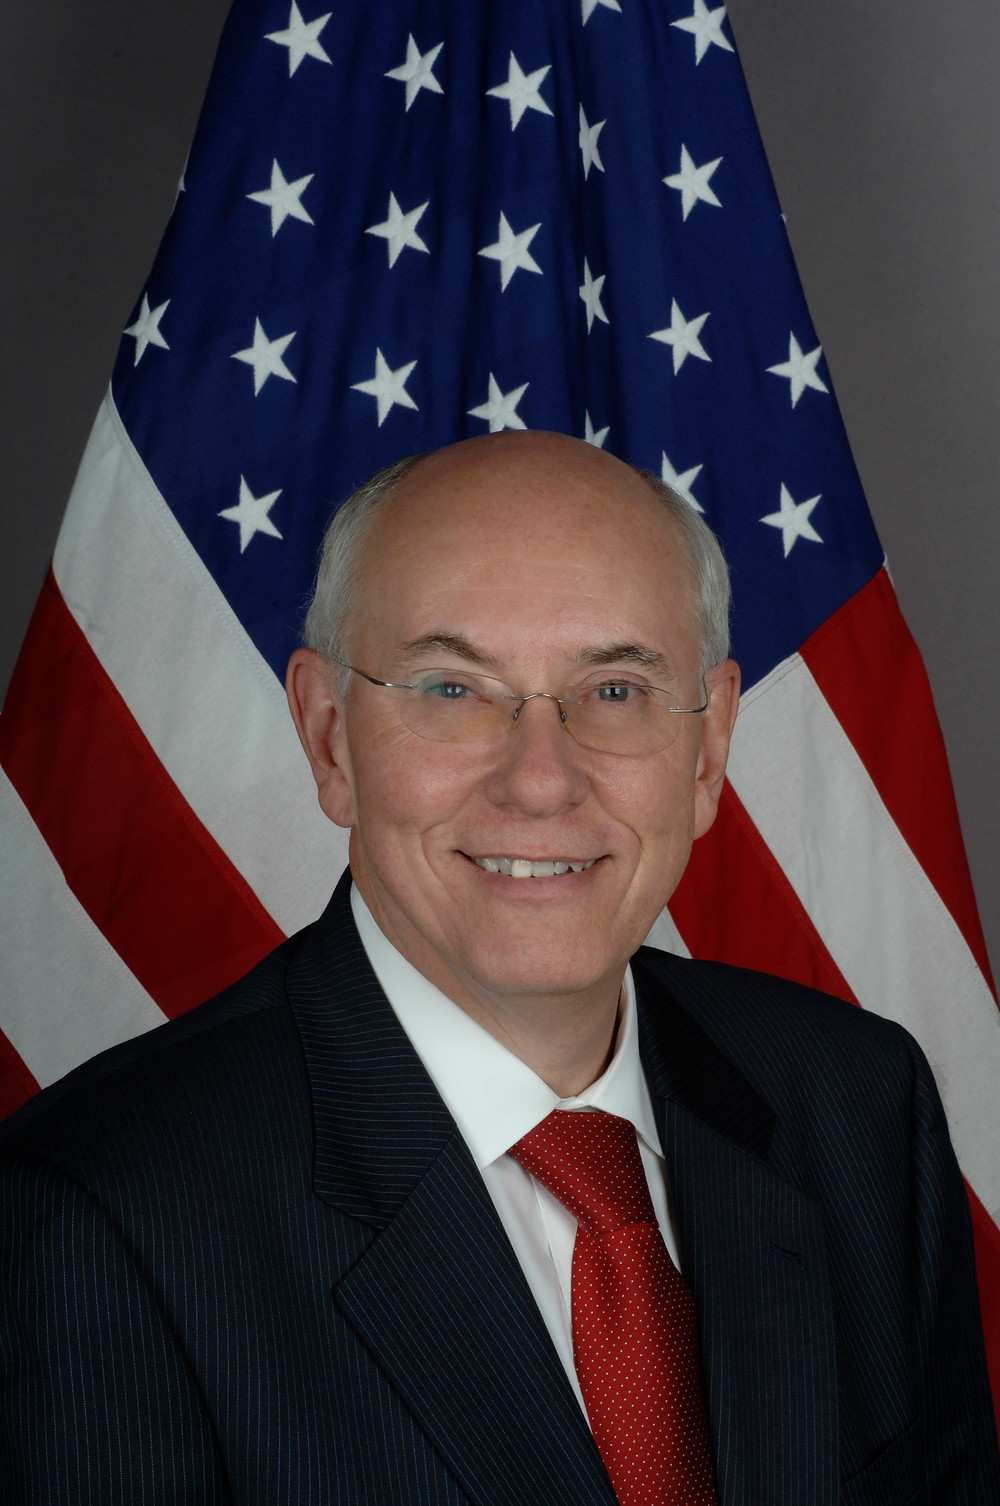 Picture of speaker, Amb. William Garvelink (ret.) in front of United State flag